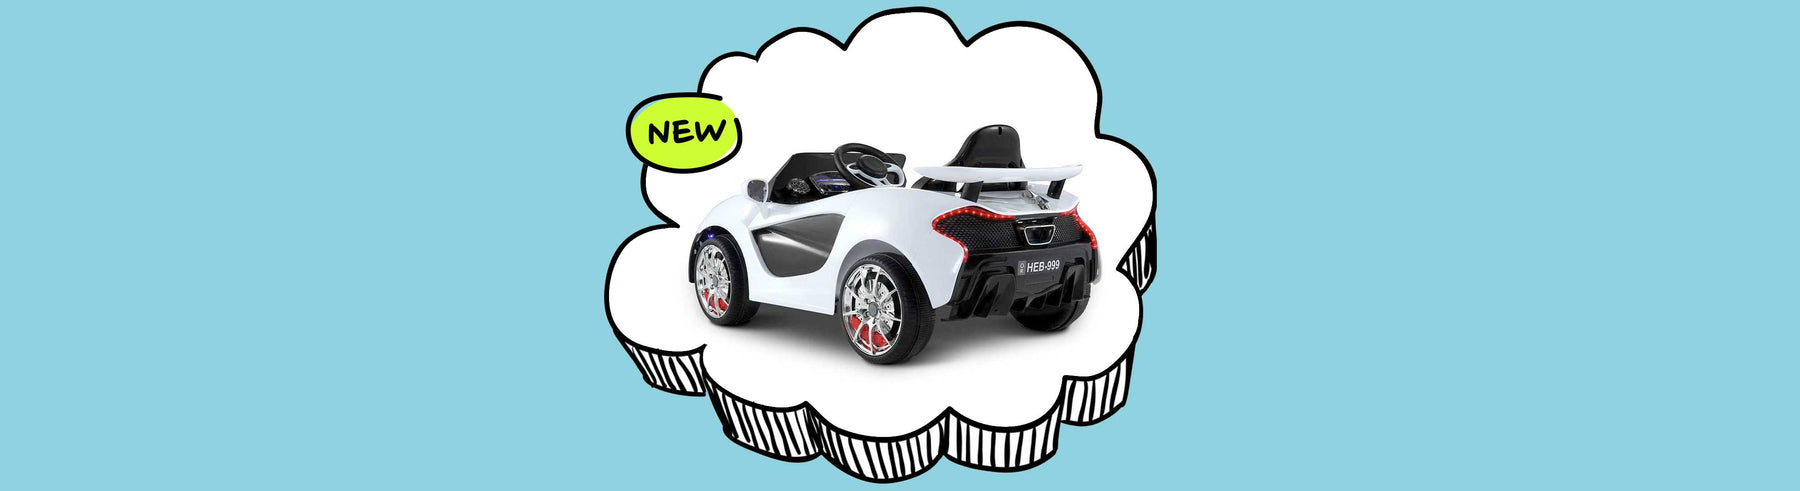 McLaren Inspired Kids Ride on Car with Remote Control